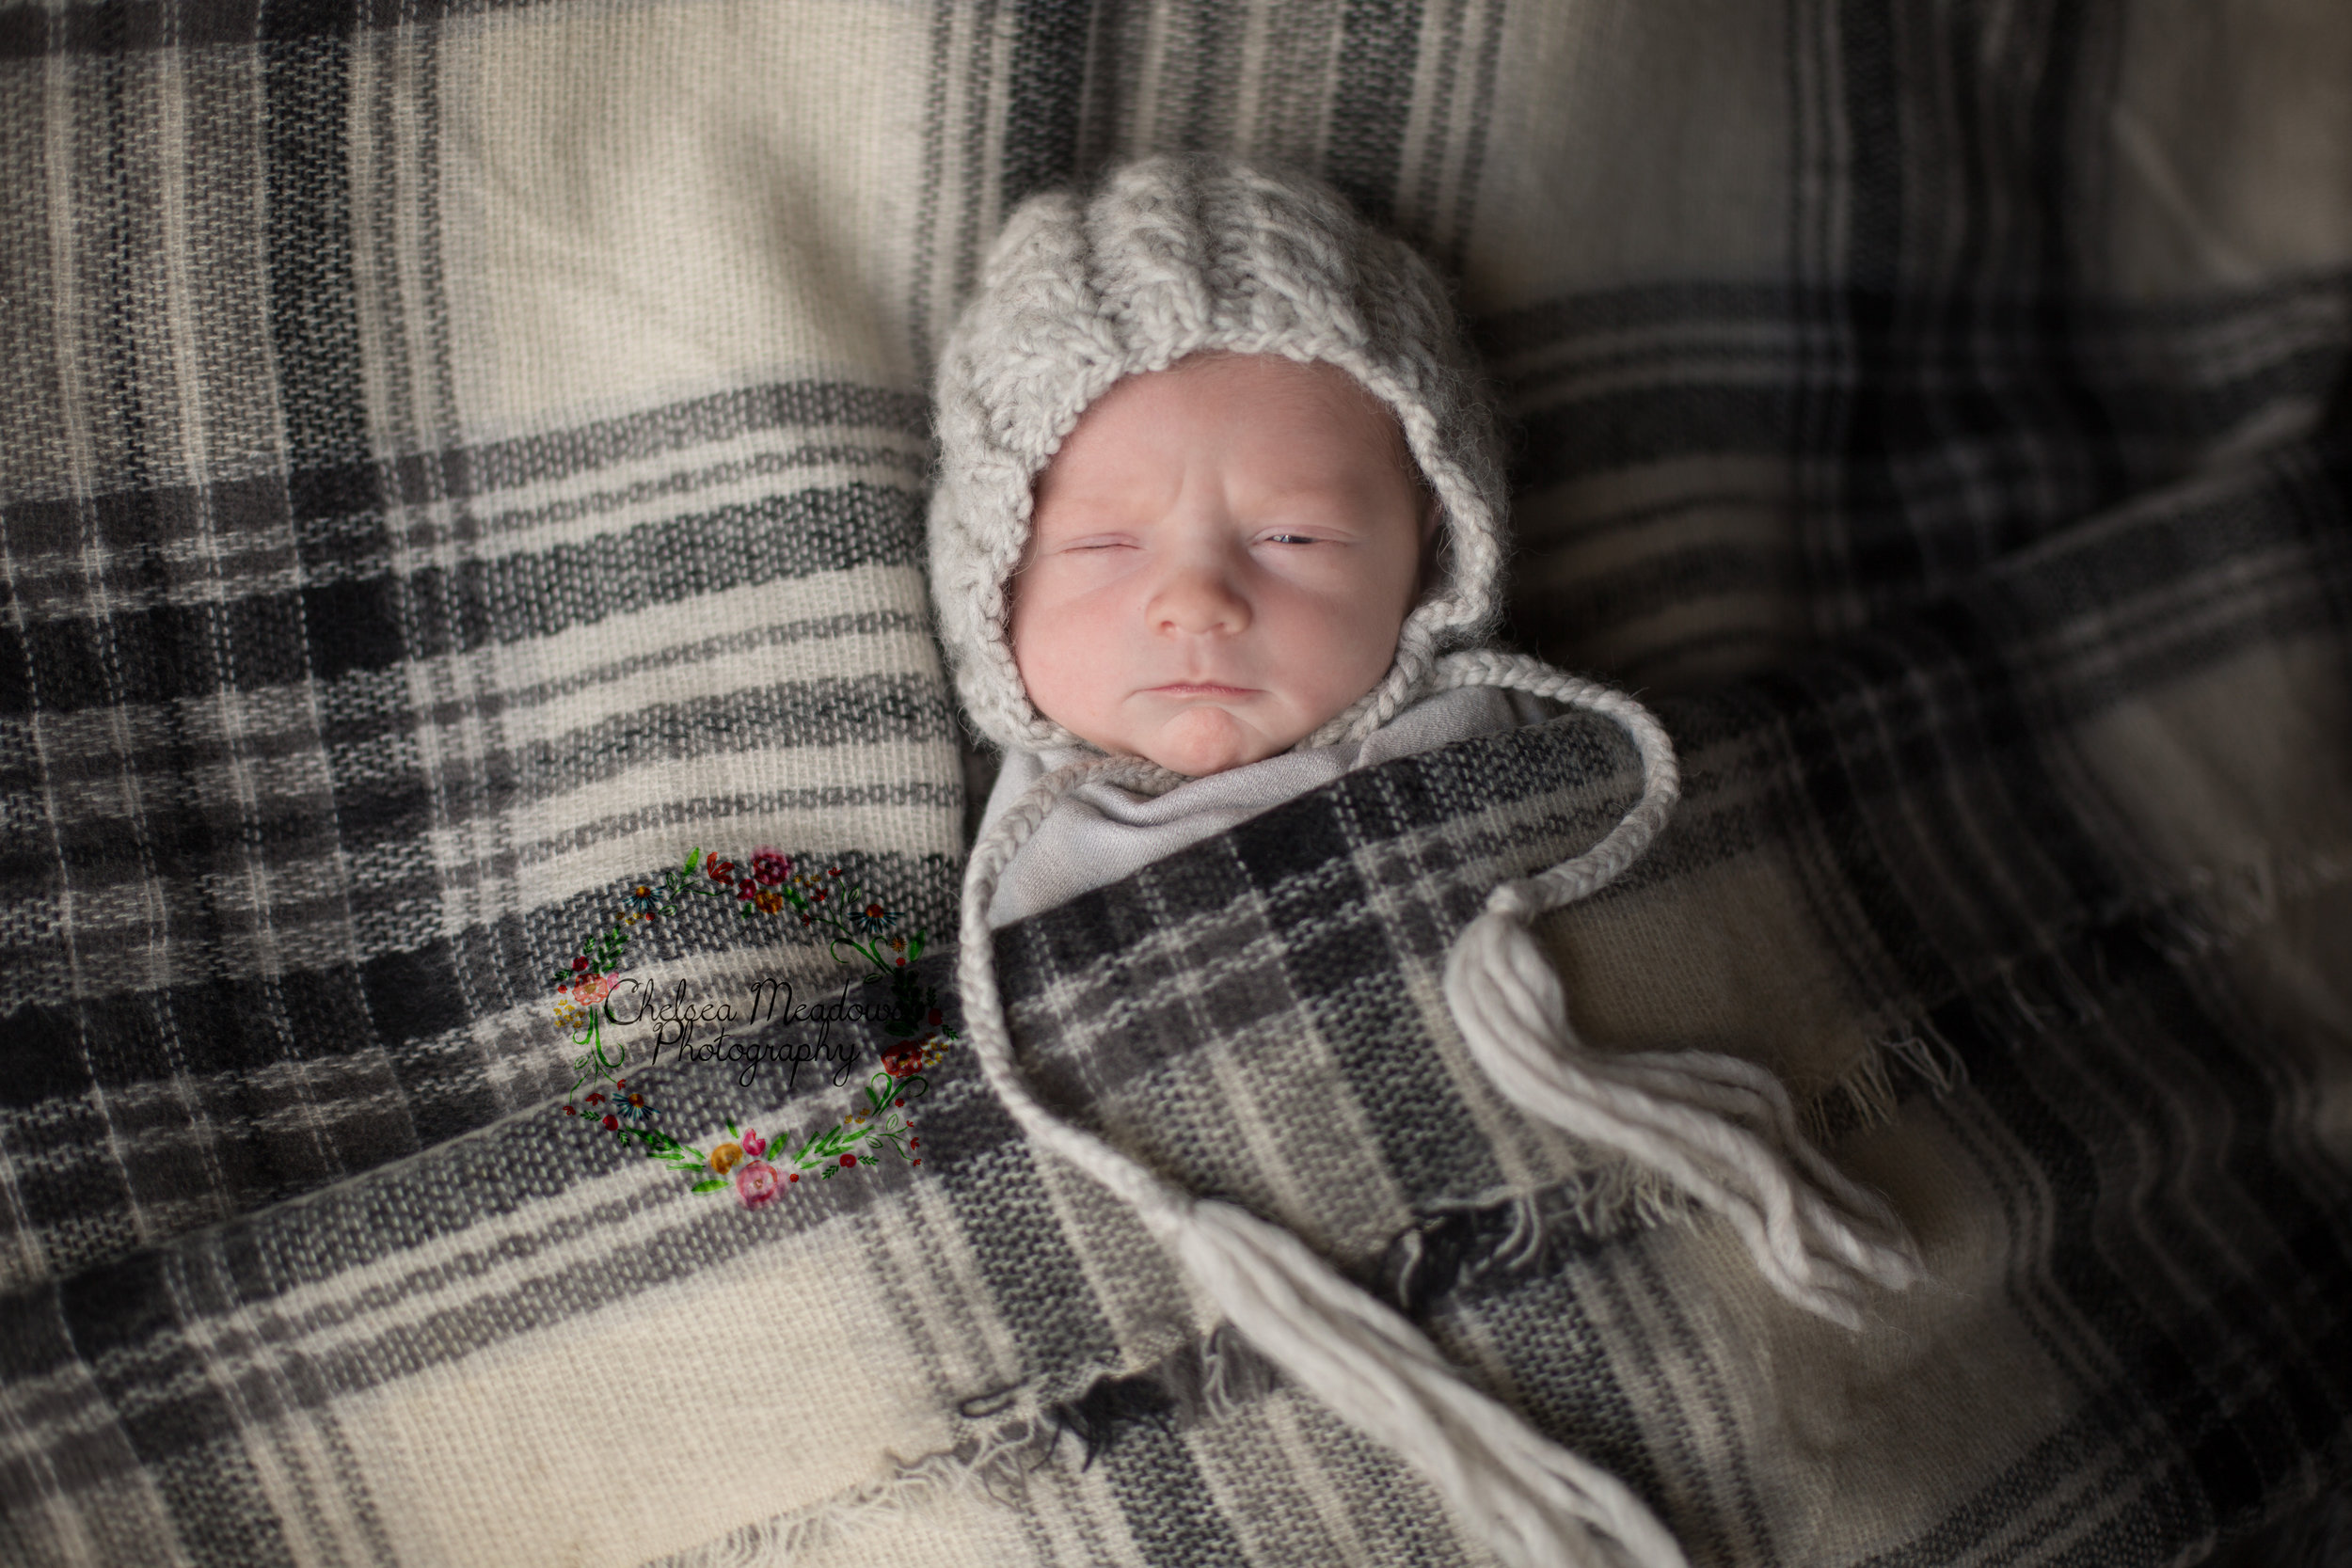 Mark Newborn Session - Chelsea Meadows Photography (34).jpg